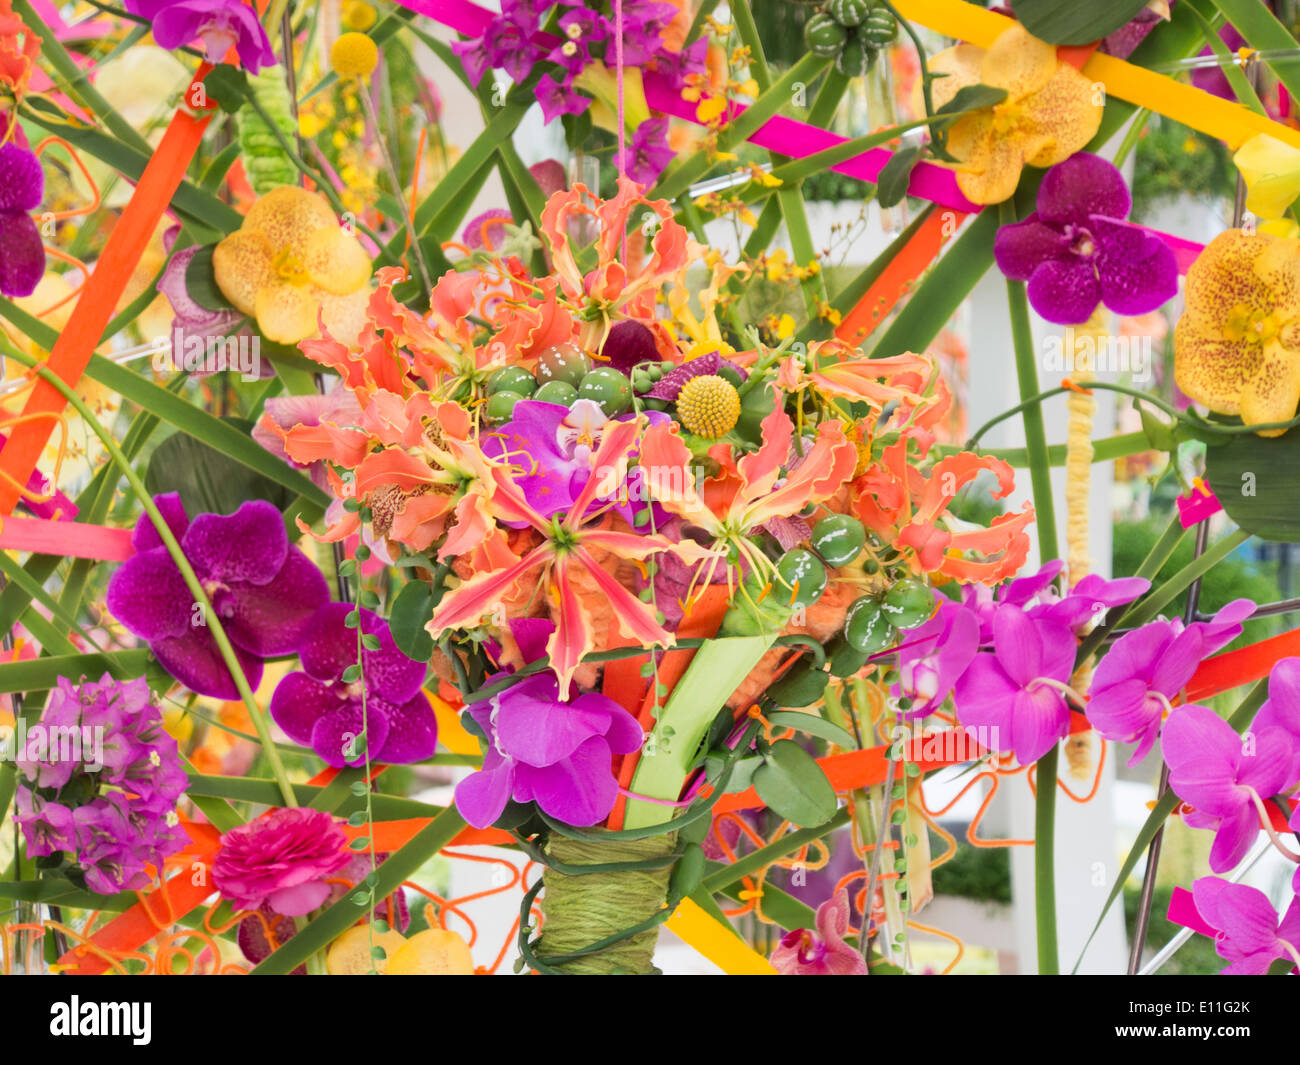 London, UK, 20th May 2014 RHS Chelsea Flower Show first day.  Interflora Floral design exhibit. - Stock Image